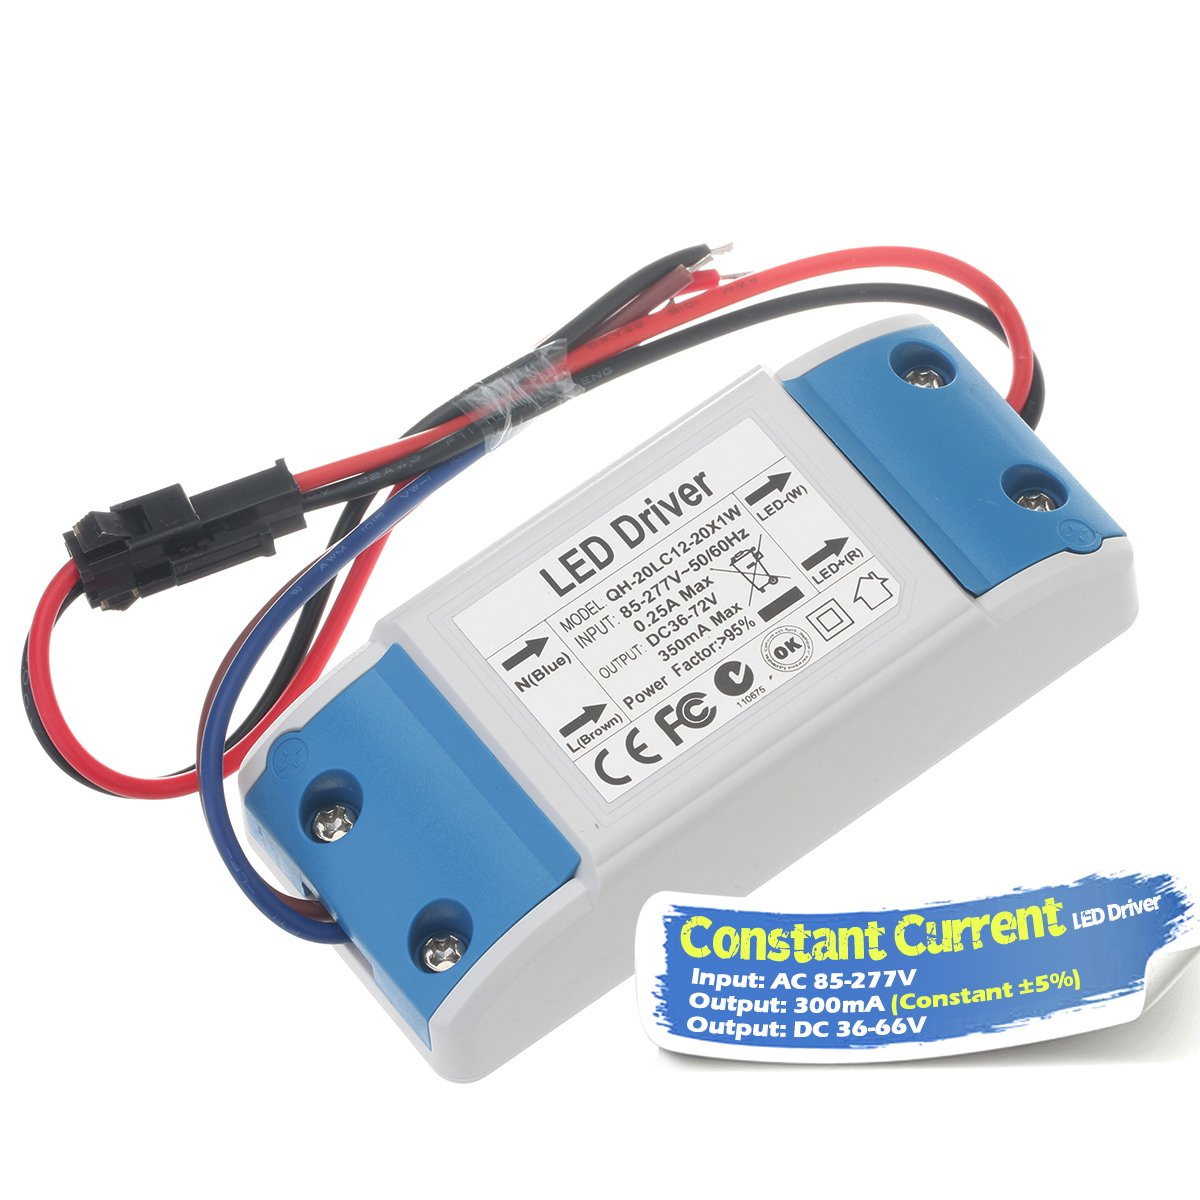 Chanzon Led Driver 300ma Constant Current Output 36v 66v Input 85 Simple Highpower Circuit Light Flashlight Circuitedited 277v Ac Dc 12 20 X1w 12w 15w 18w 20w Power Supply 300 Ma Lighting Transformer